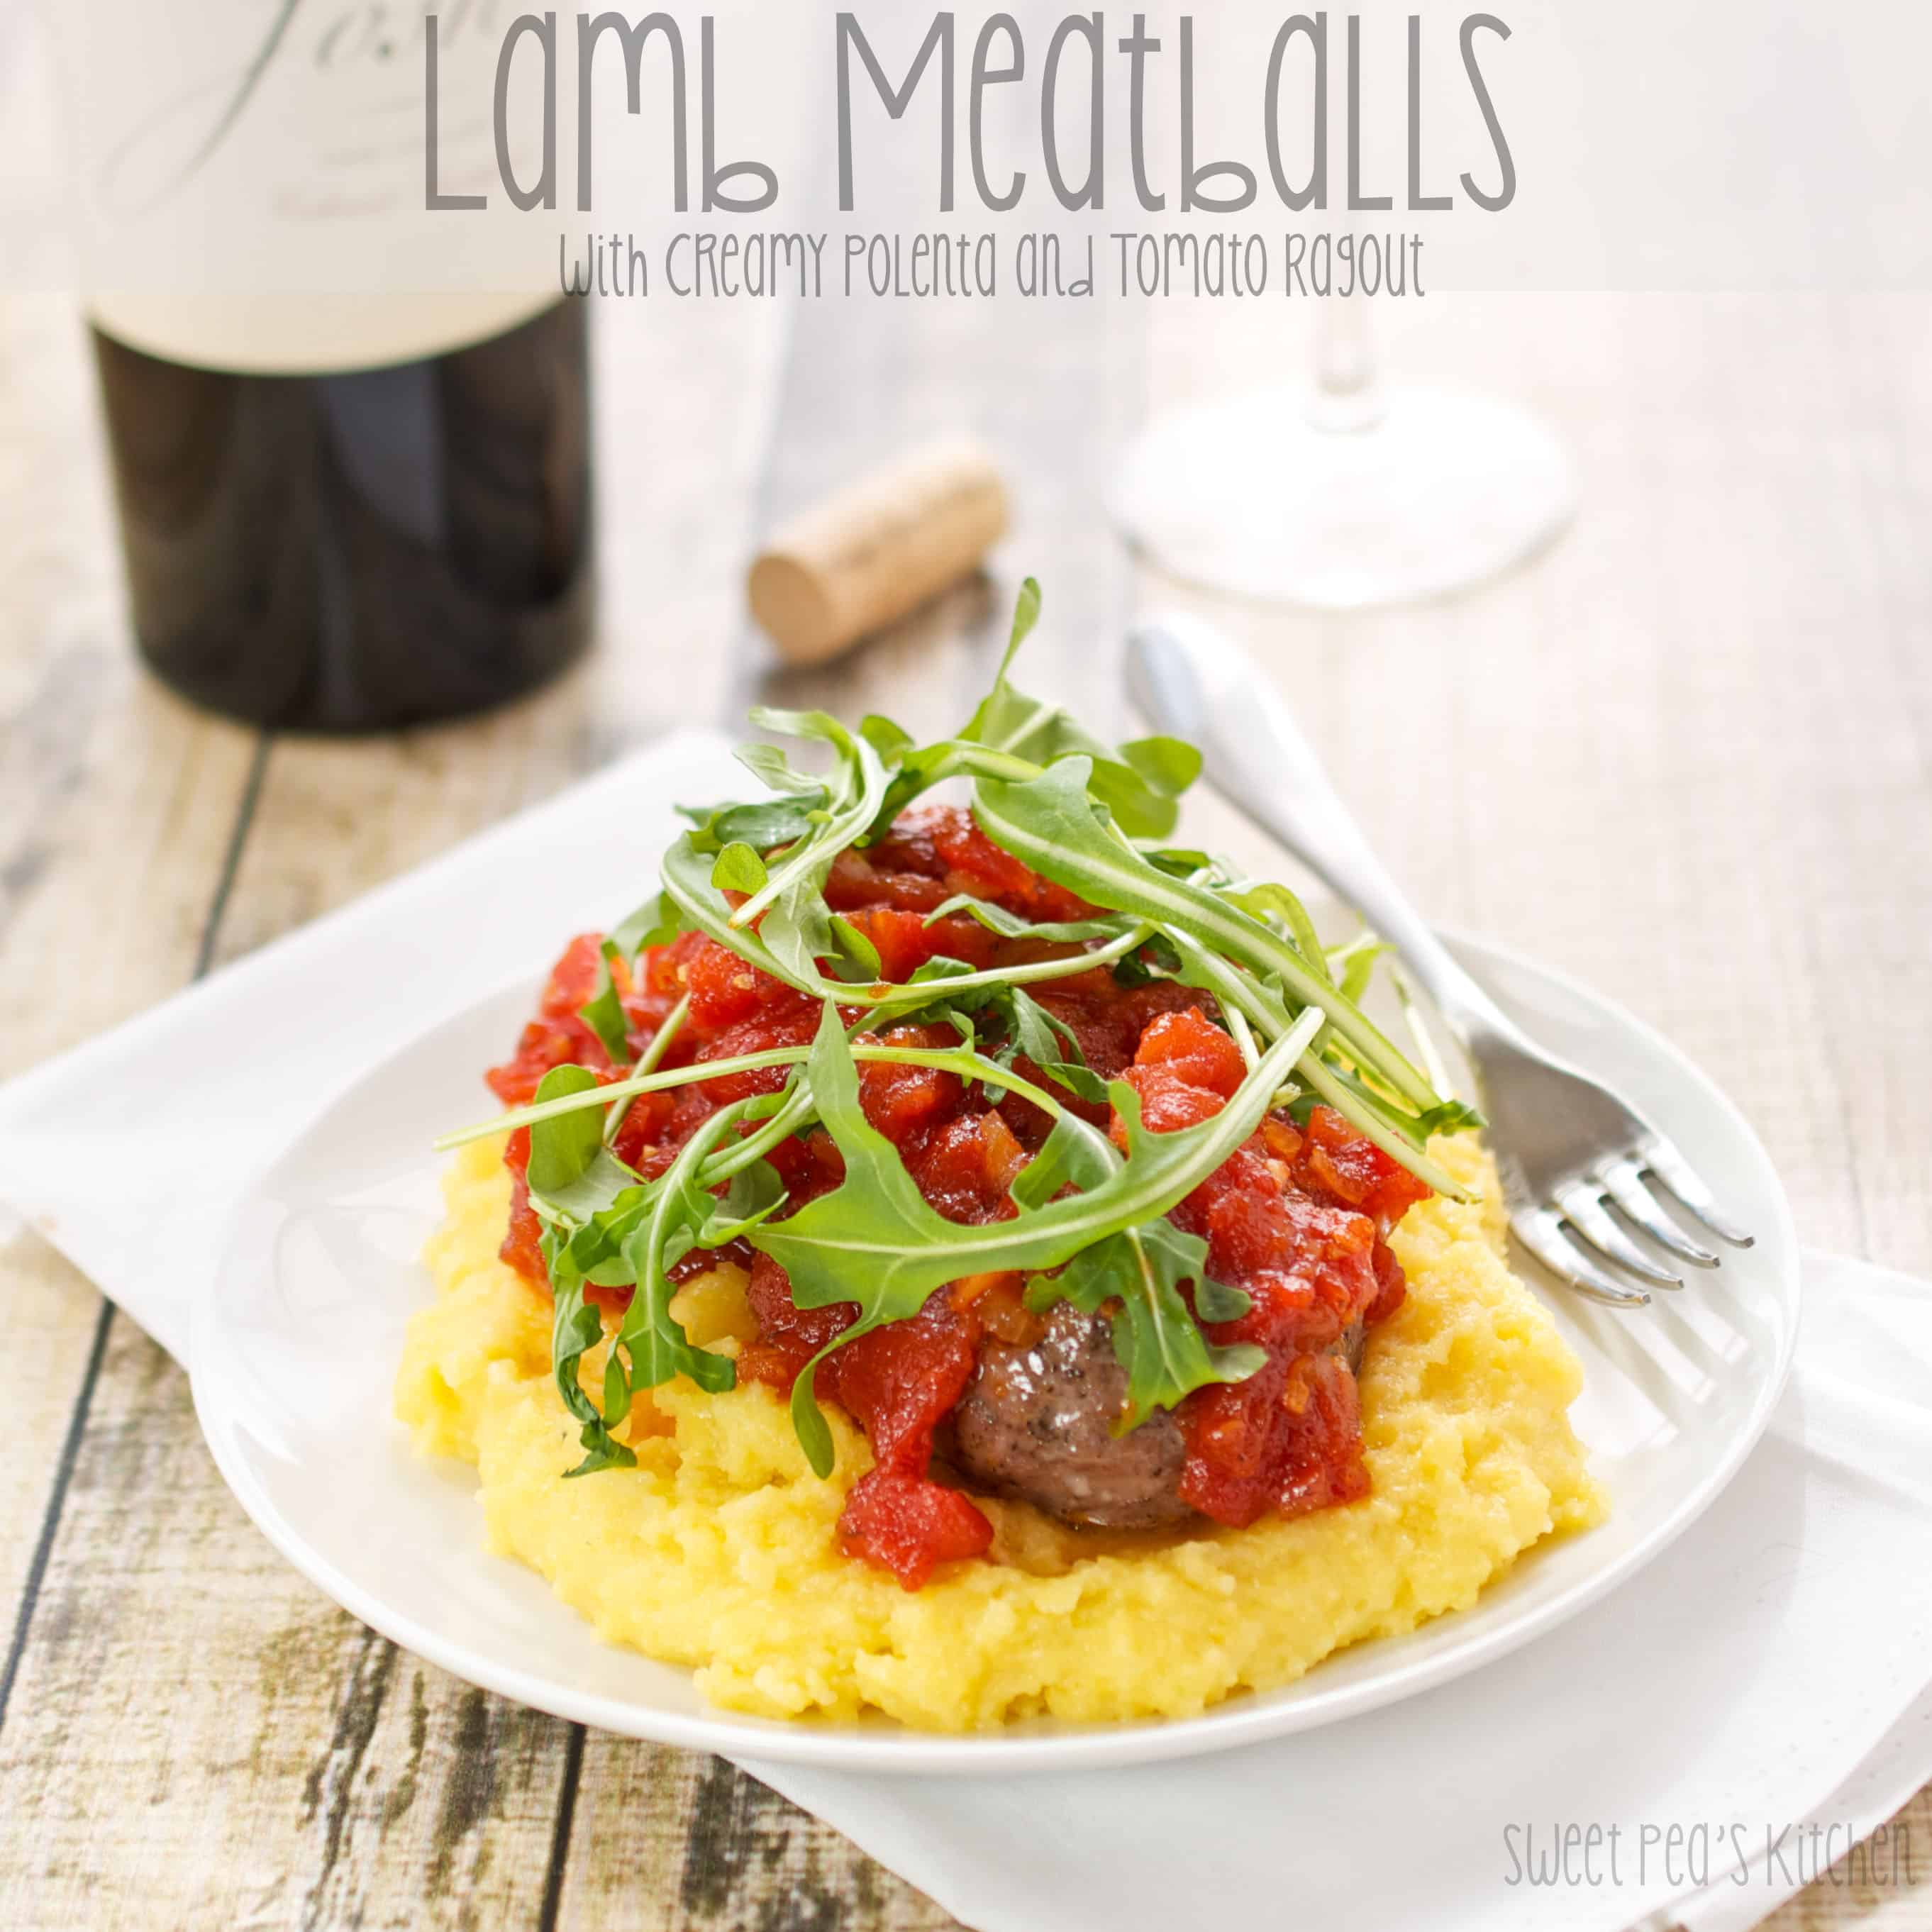 lamb meatballs with creamy polenta and tomato ragout